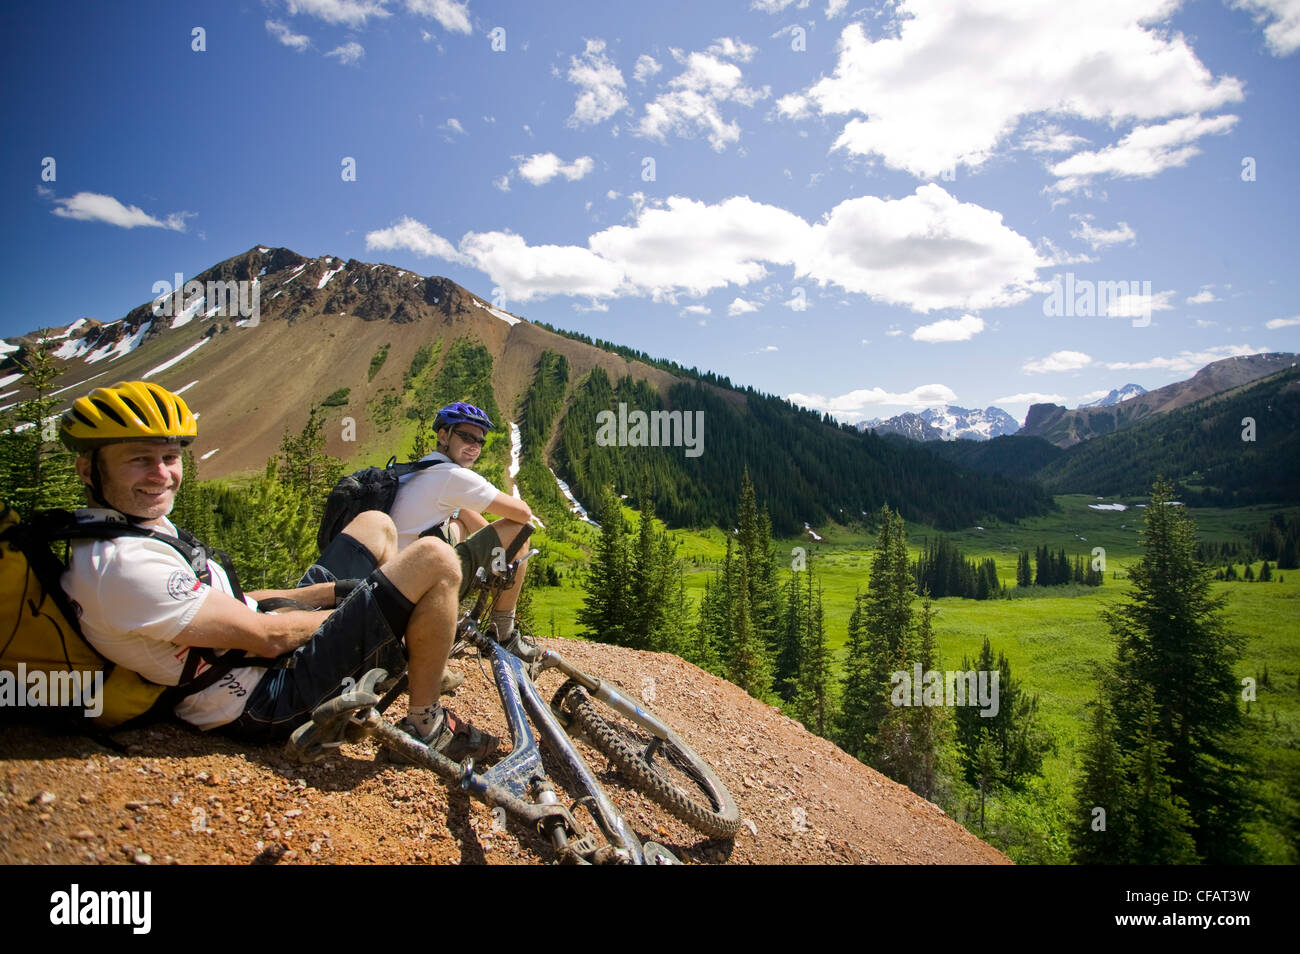 Mountain bikers relaxing along the trail towards Windy Pass, Southern Chilcotin Mountains, British Columbia, Canada - Stock Image